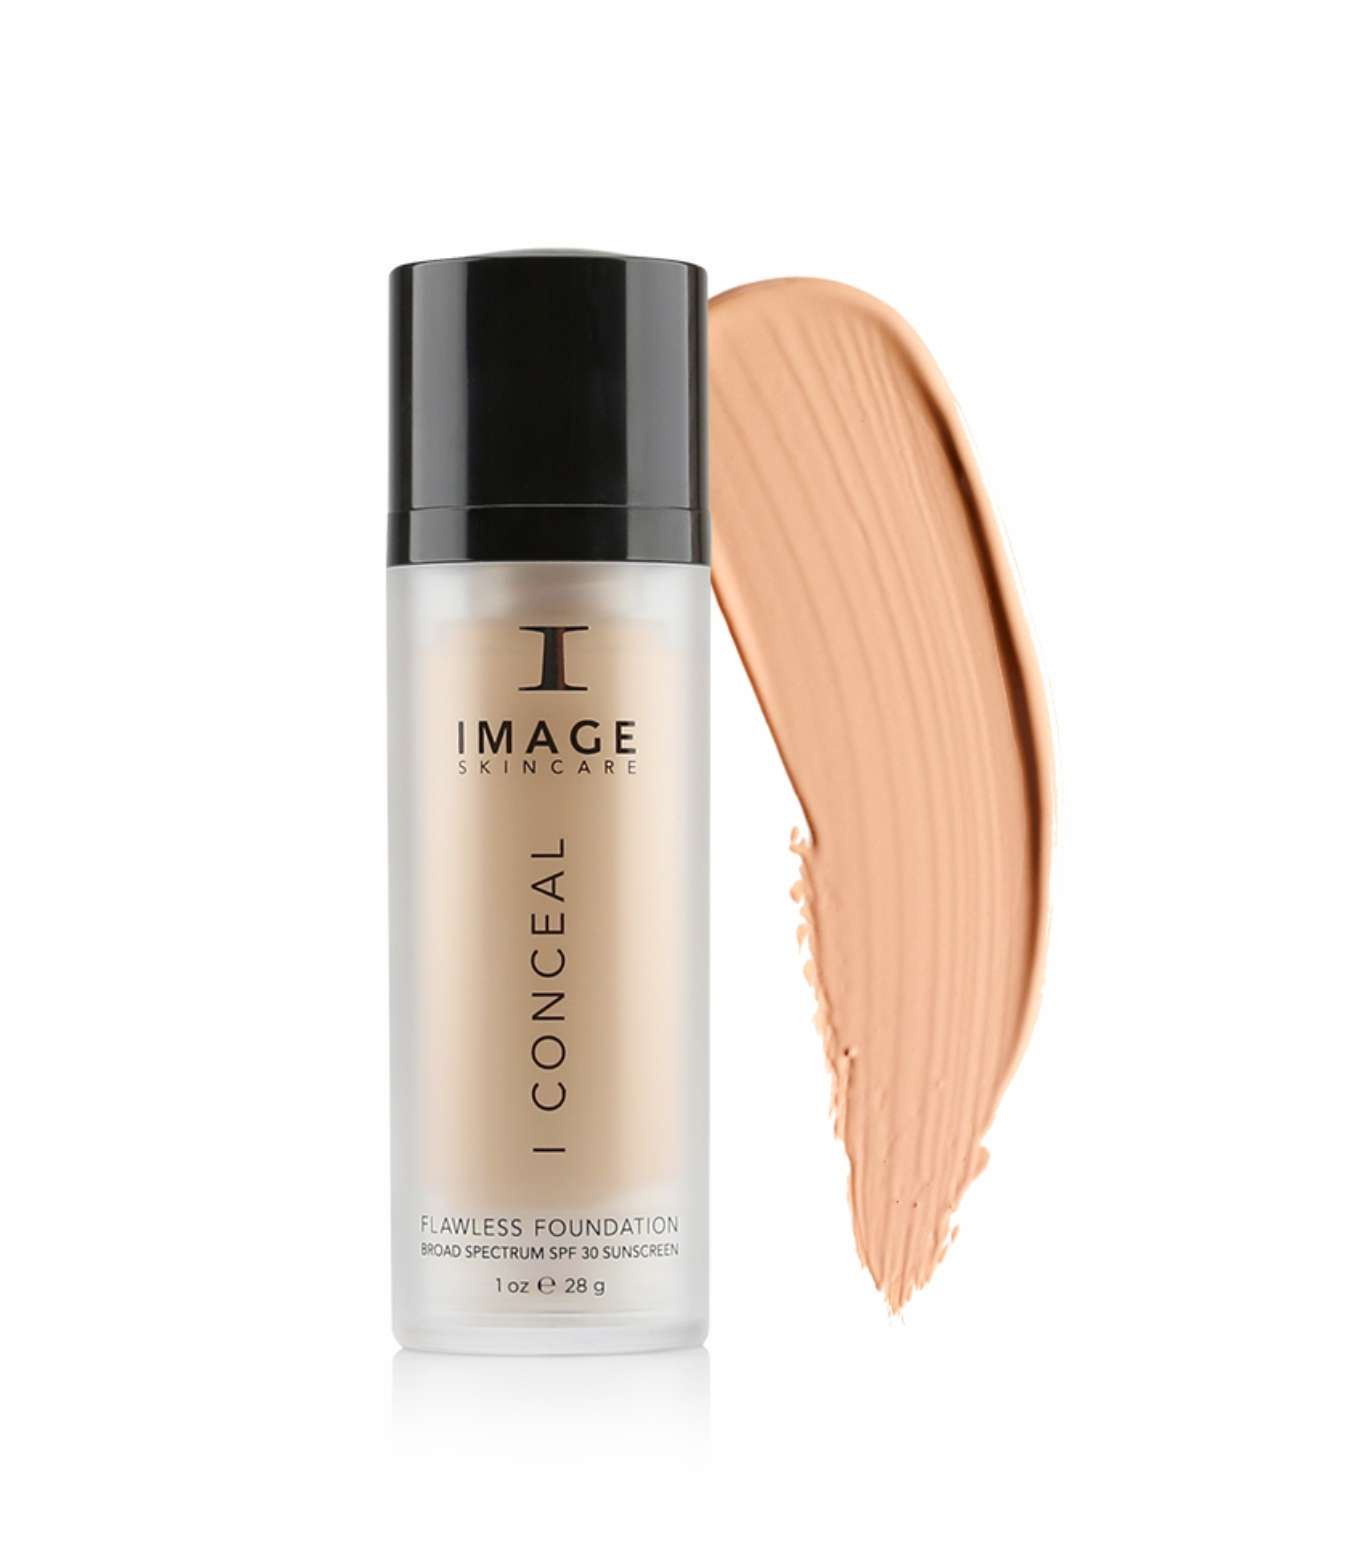 I BEAUTY I Conceal Flawless Foundation Beige